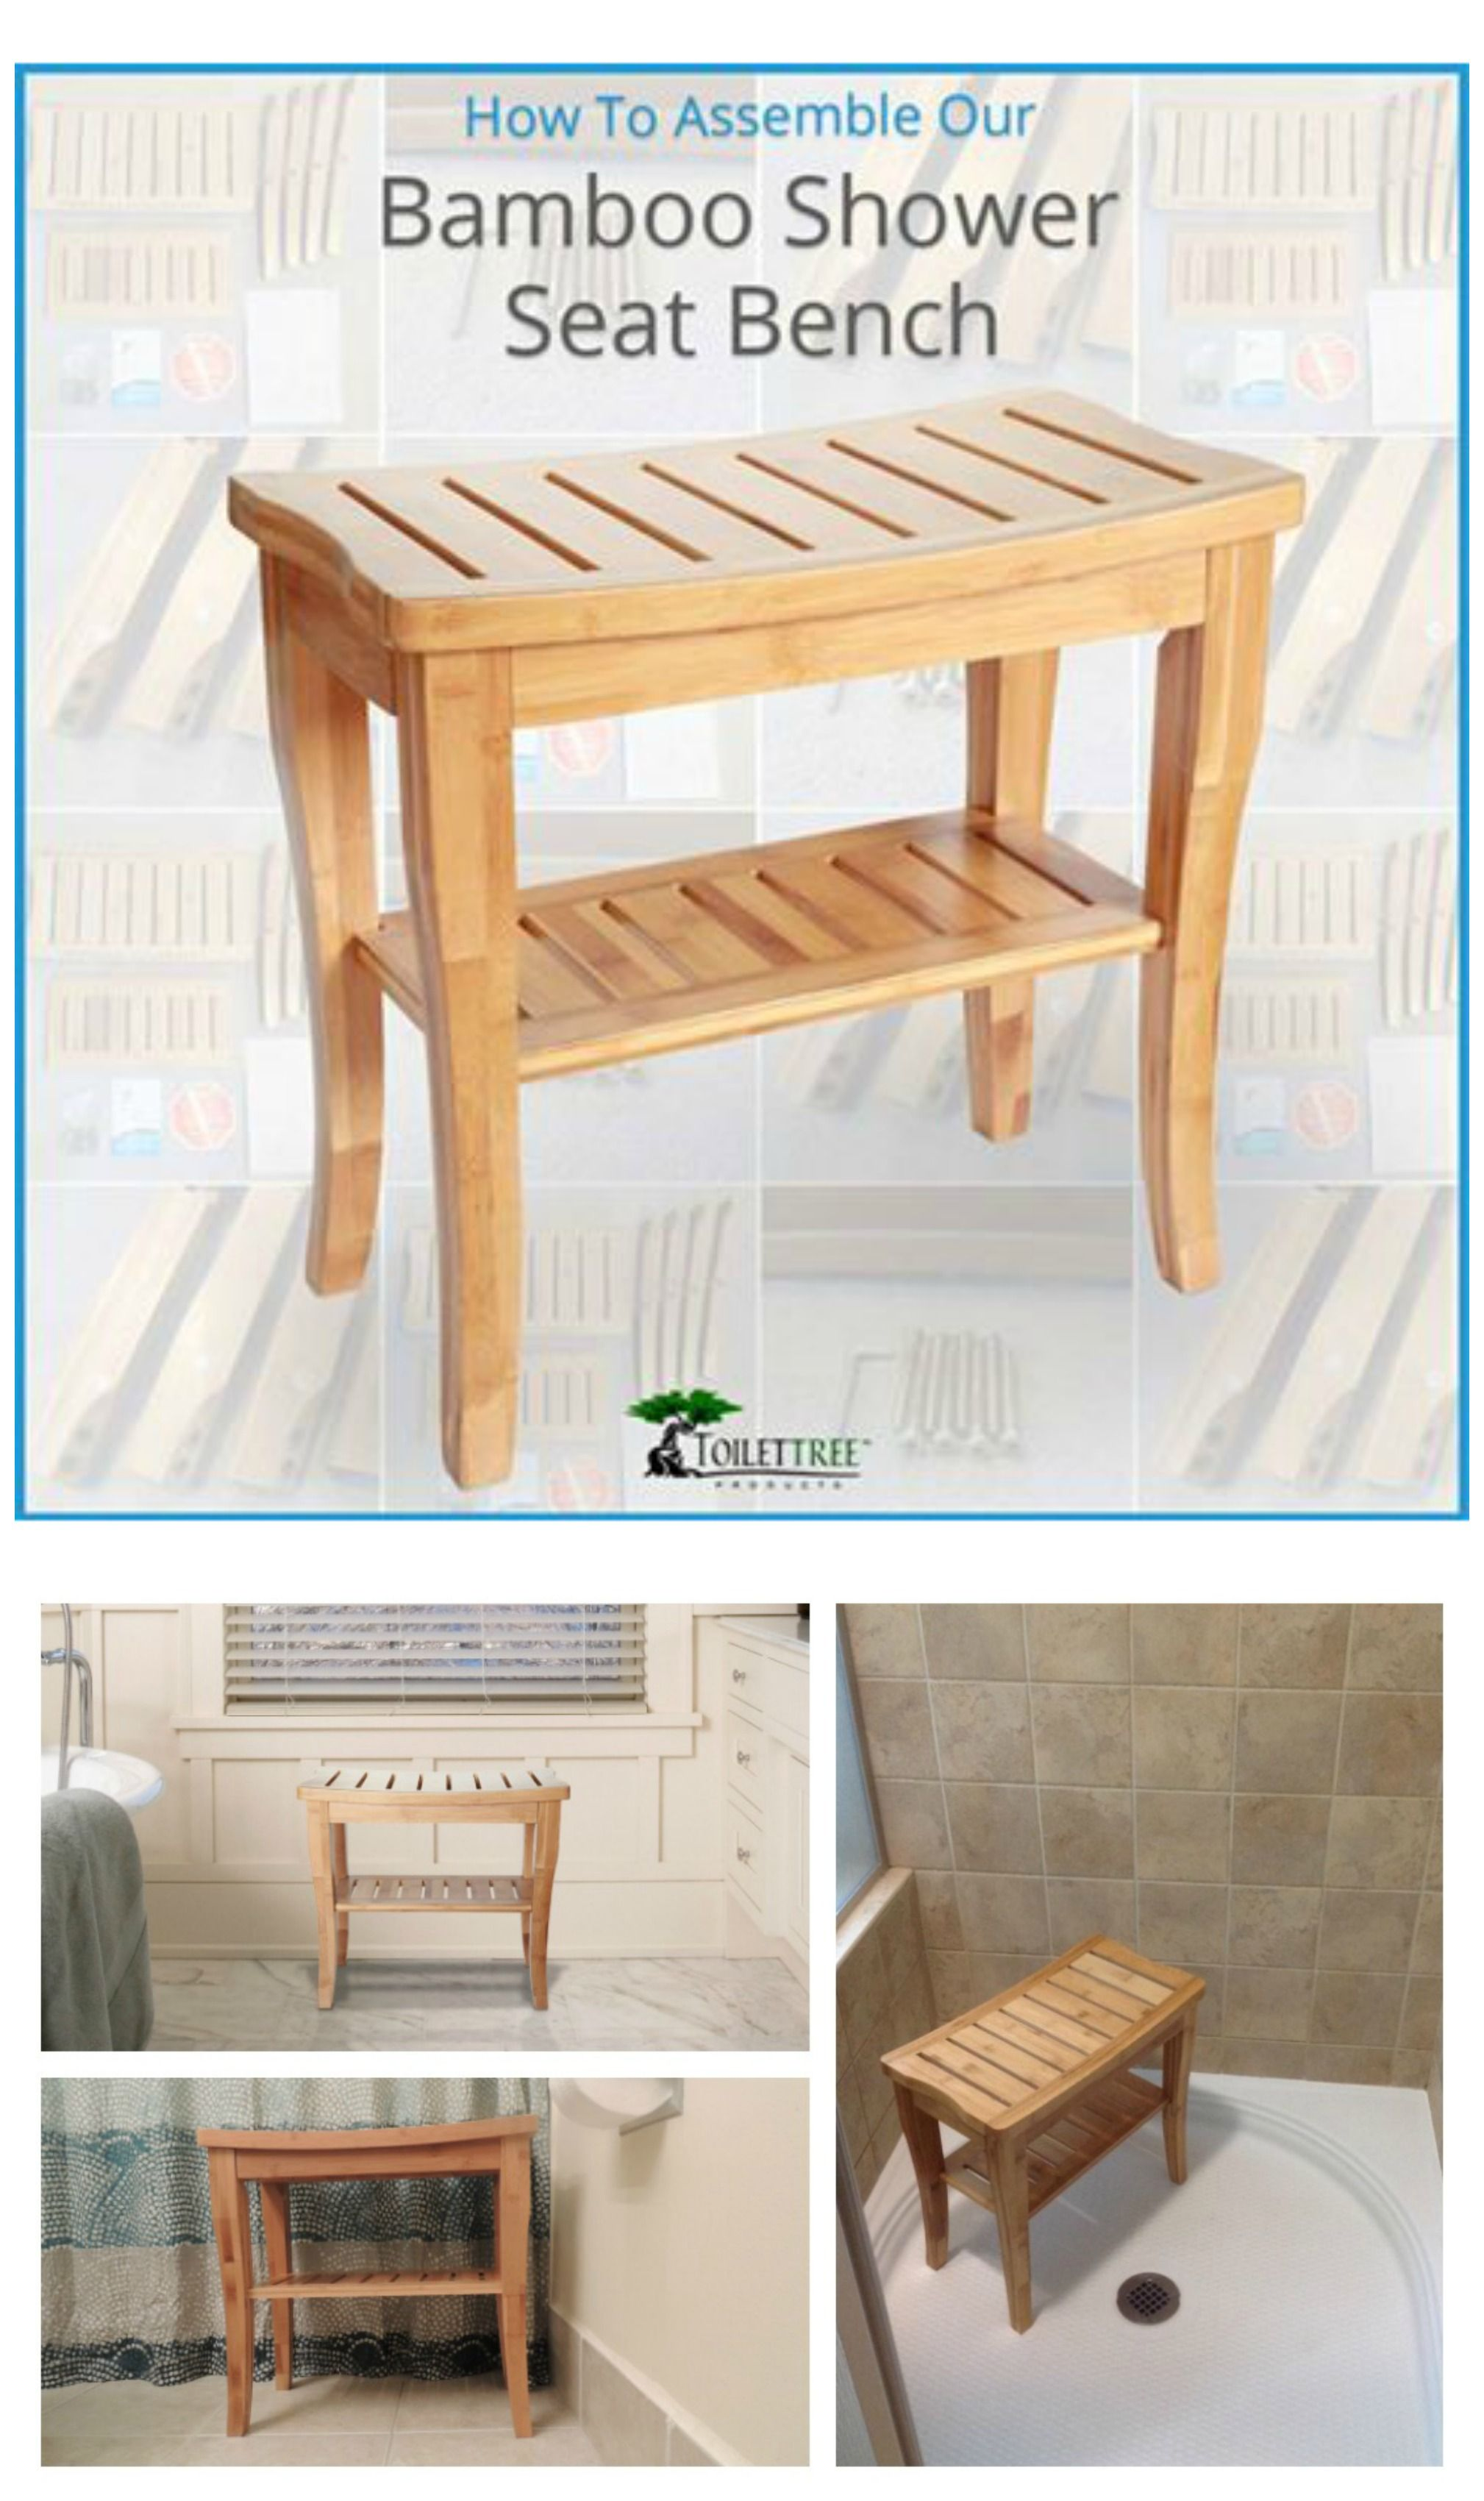 Bamboo Shower Seat with Shelf - DIY Guide   Shower seat